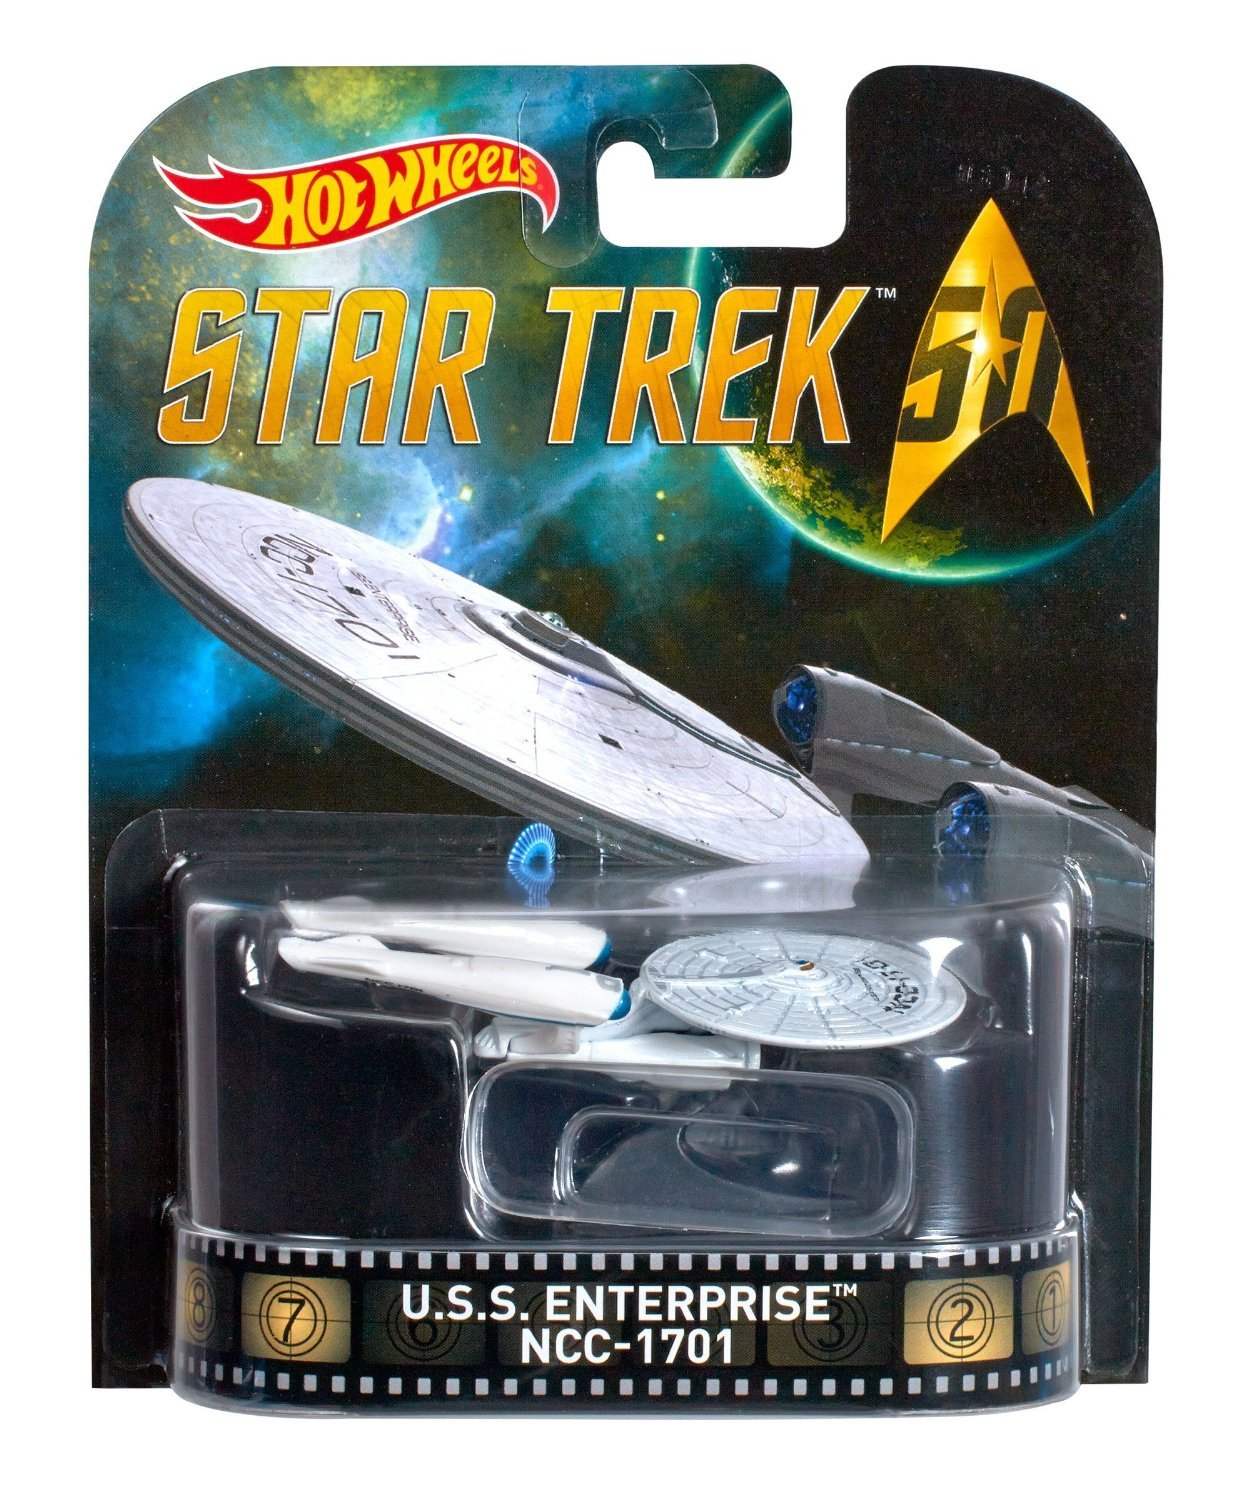 Primary image for Hot Wheels Star Trek U.S.S. Enterprise NCC 1701. Retro Series. 1:64 Scale.